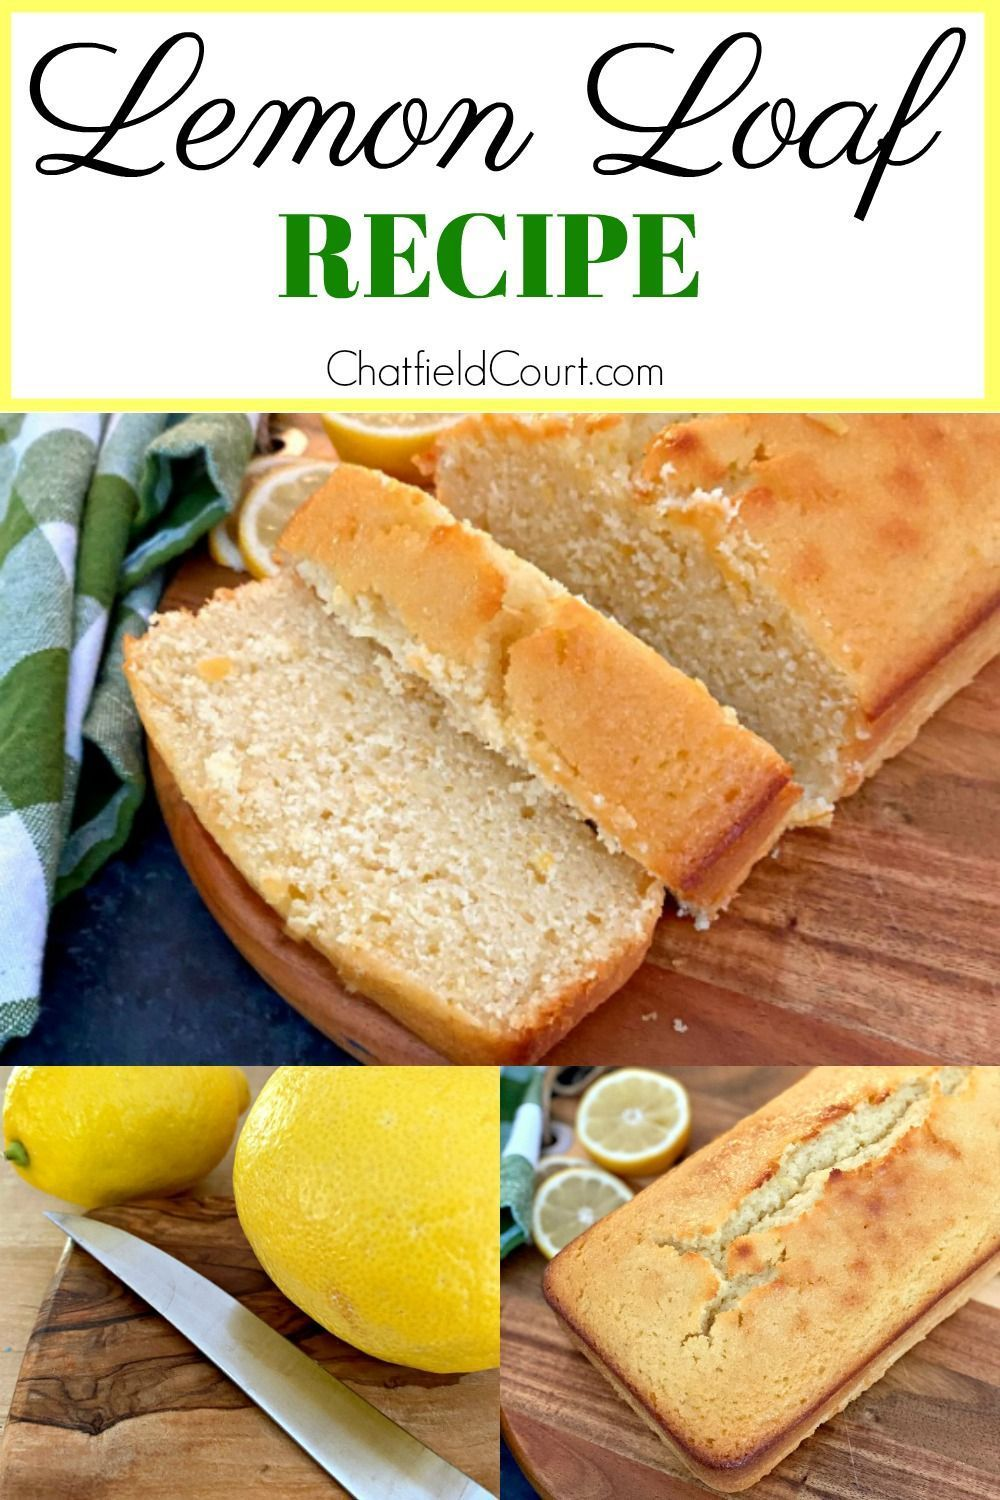 Easy lemon bread recipe using fresh lemon juice and lemon zest. A soft and moist cake that is delicious with or without lemon glaze.